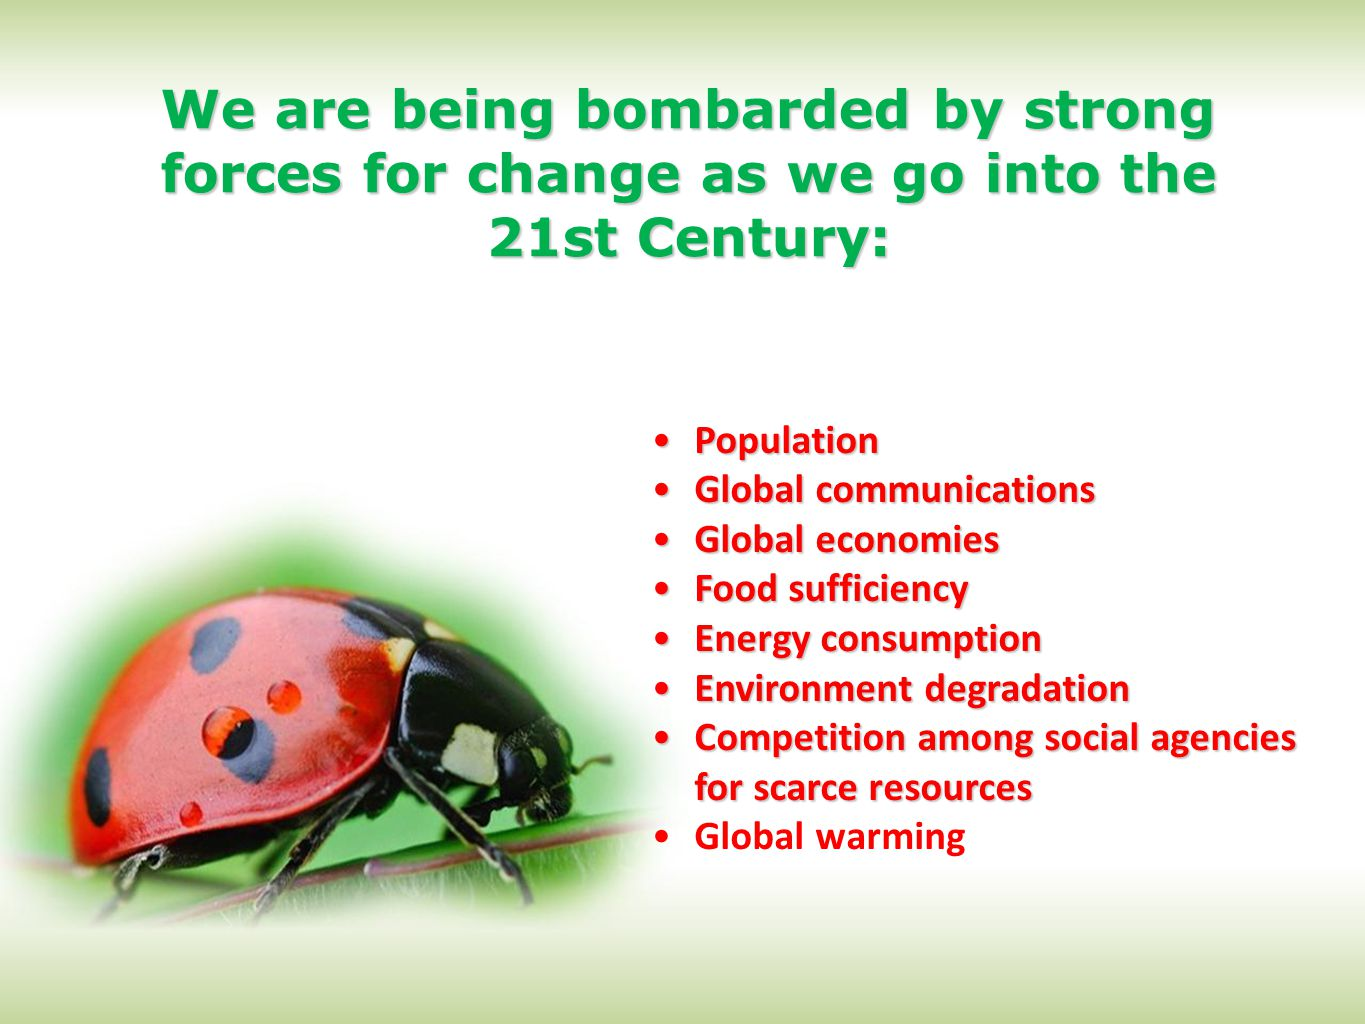 We are being bombarded by strong forces for change as we go into the 21st Century: